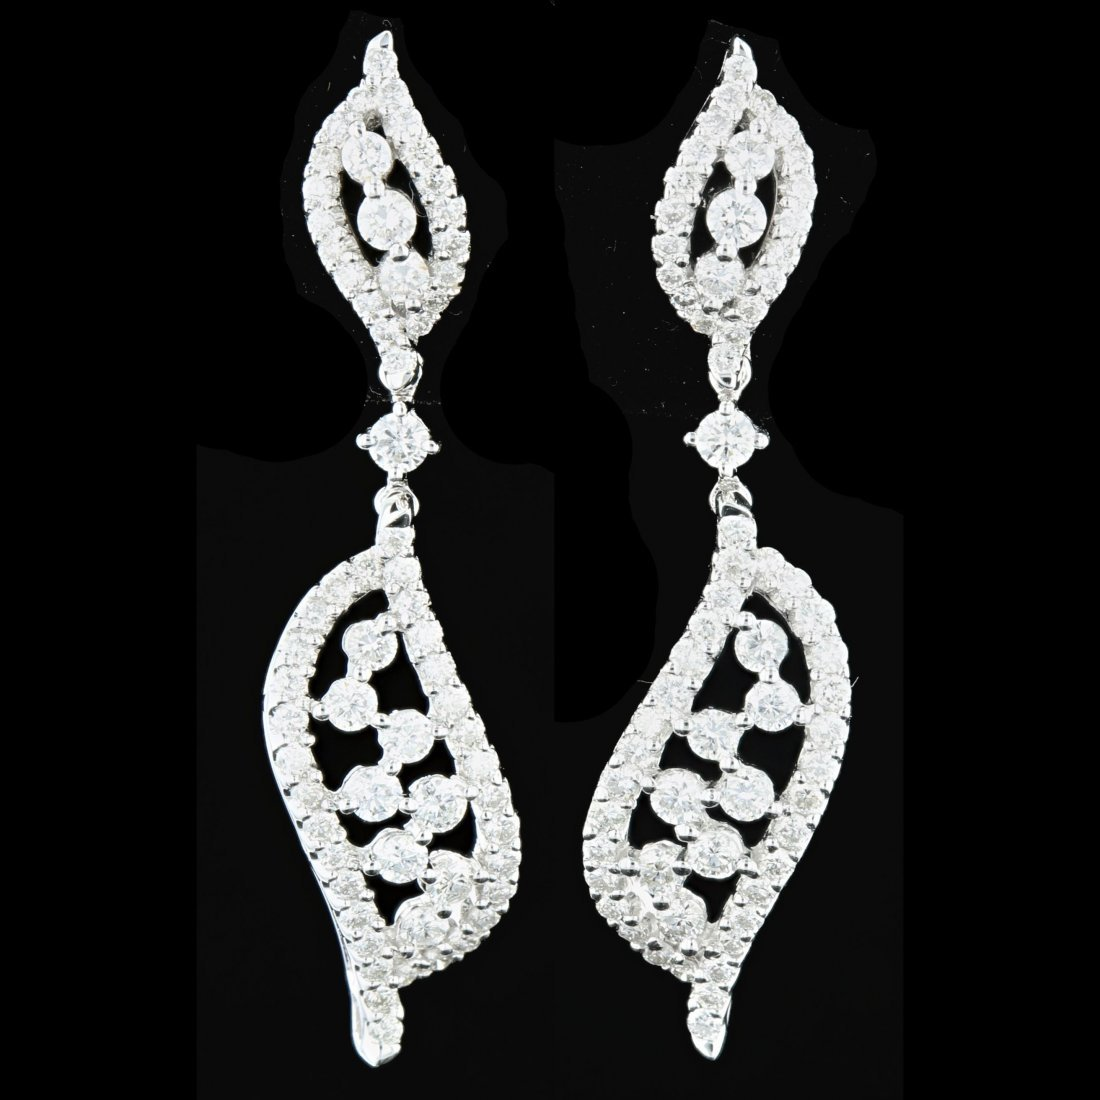 18k White Gold, 1.68CT Diamond Earrings